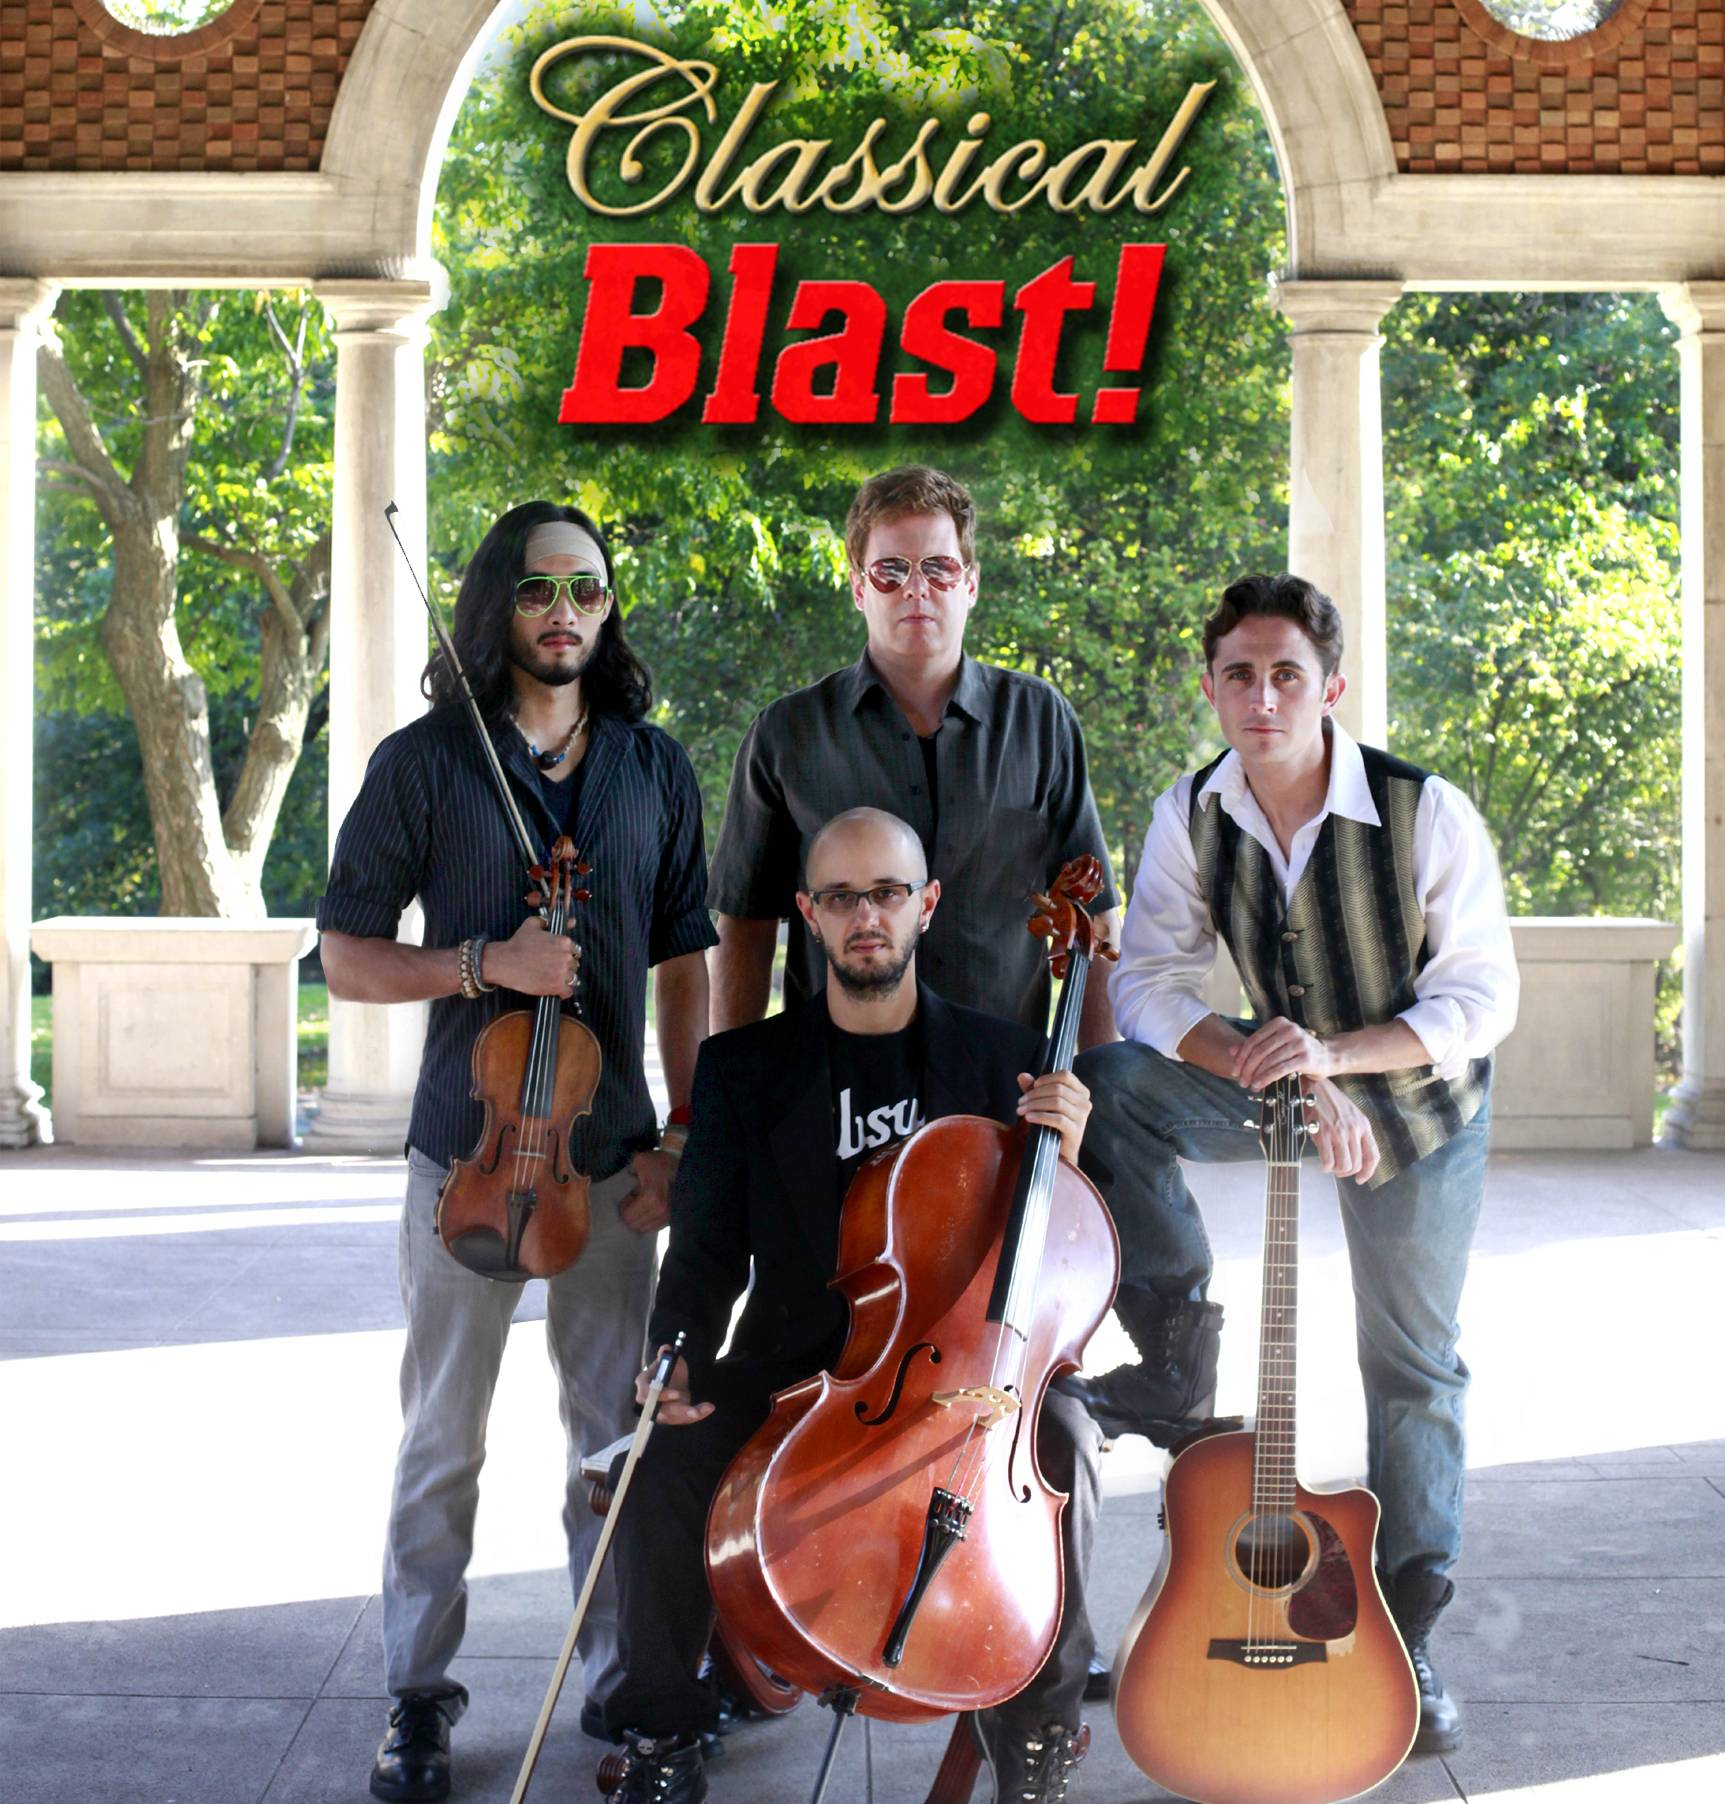 Classical Blast will perform in Palatine on July 23.Classical Blast